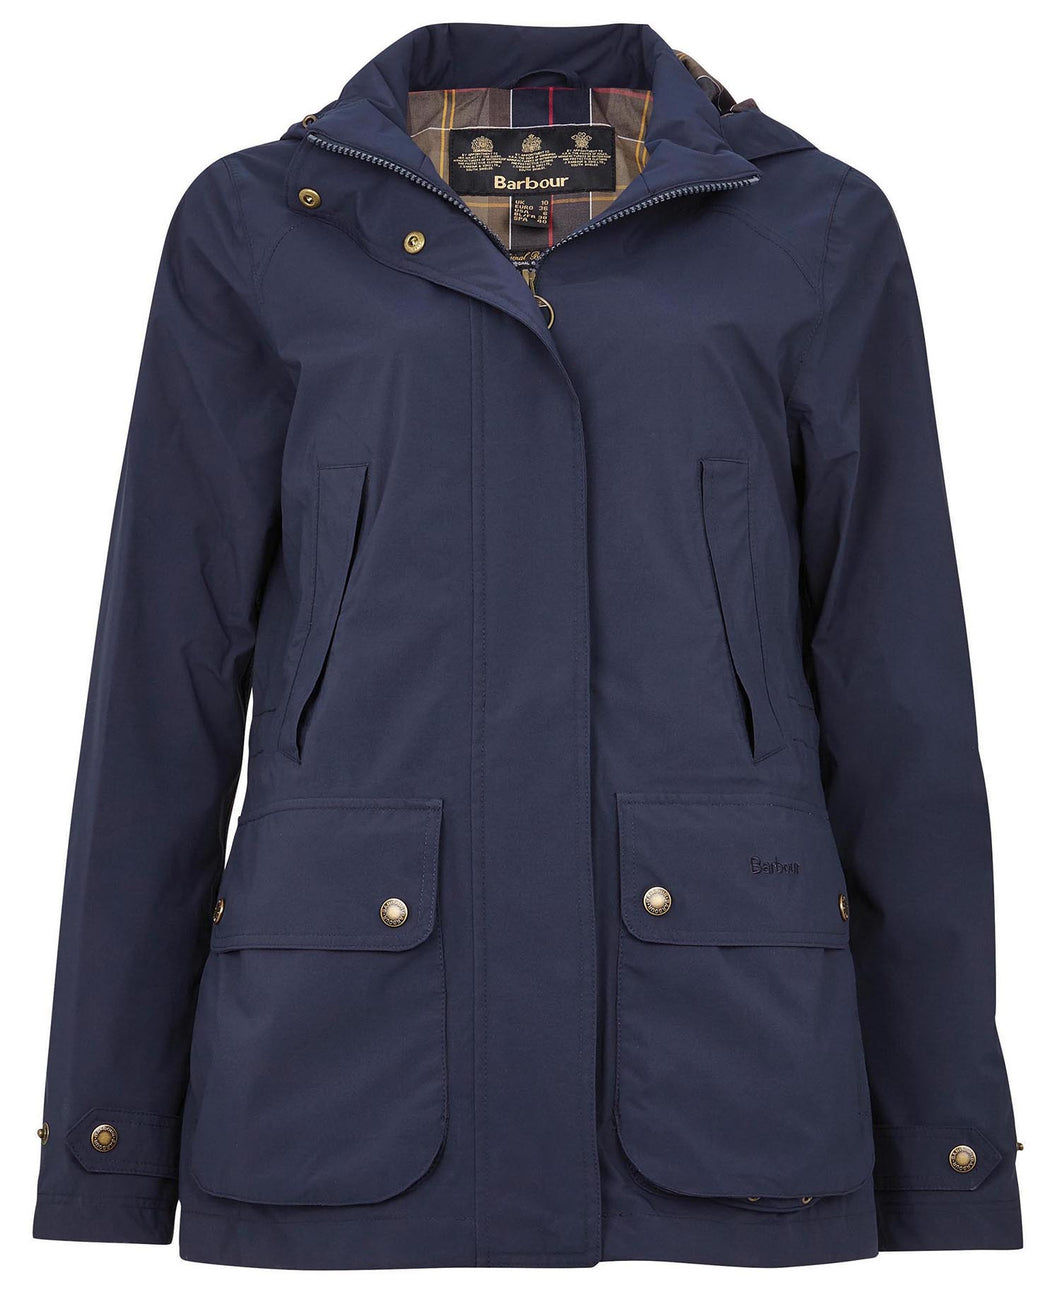 Barbour Women's Clyde Waterproof Jacket